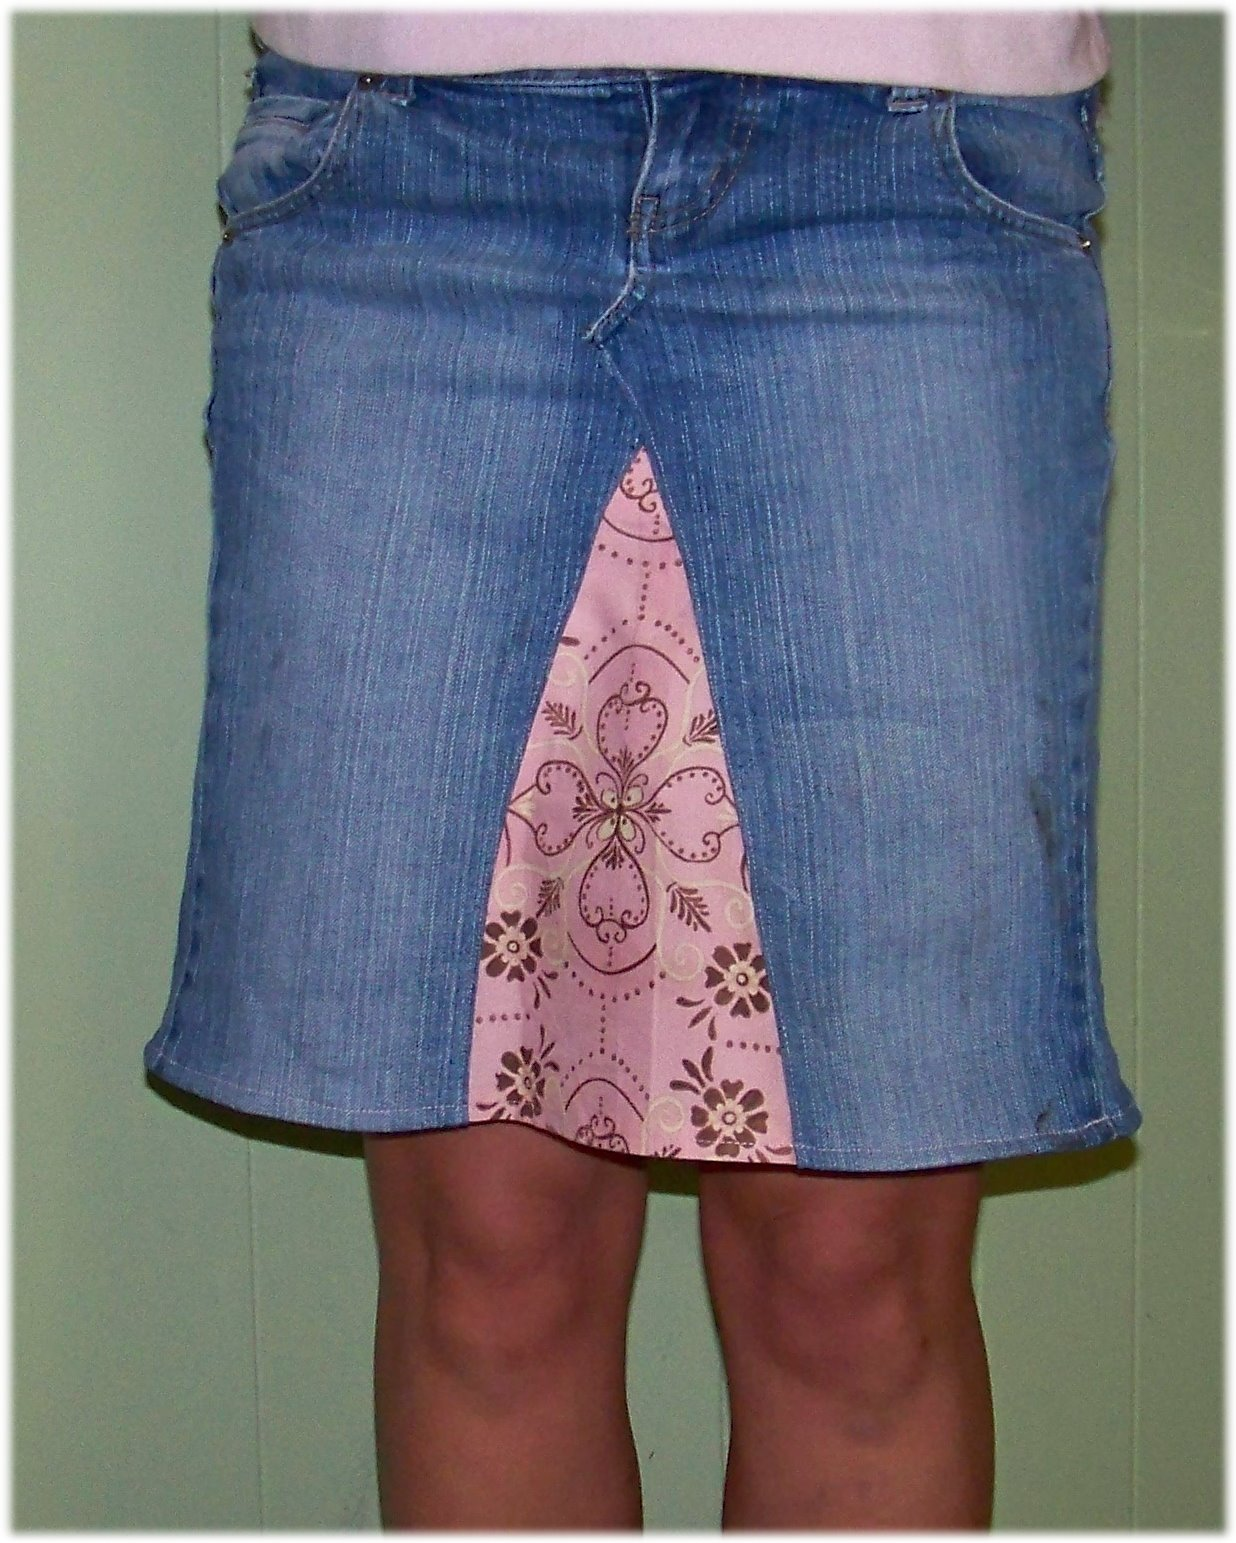 How to make a jean skirt out of jean shorts – Modern skirts blog ...